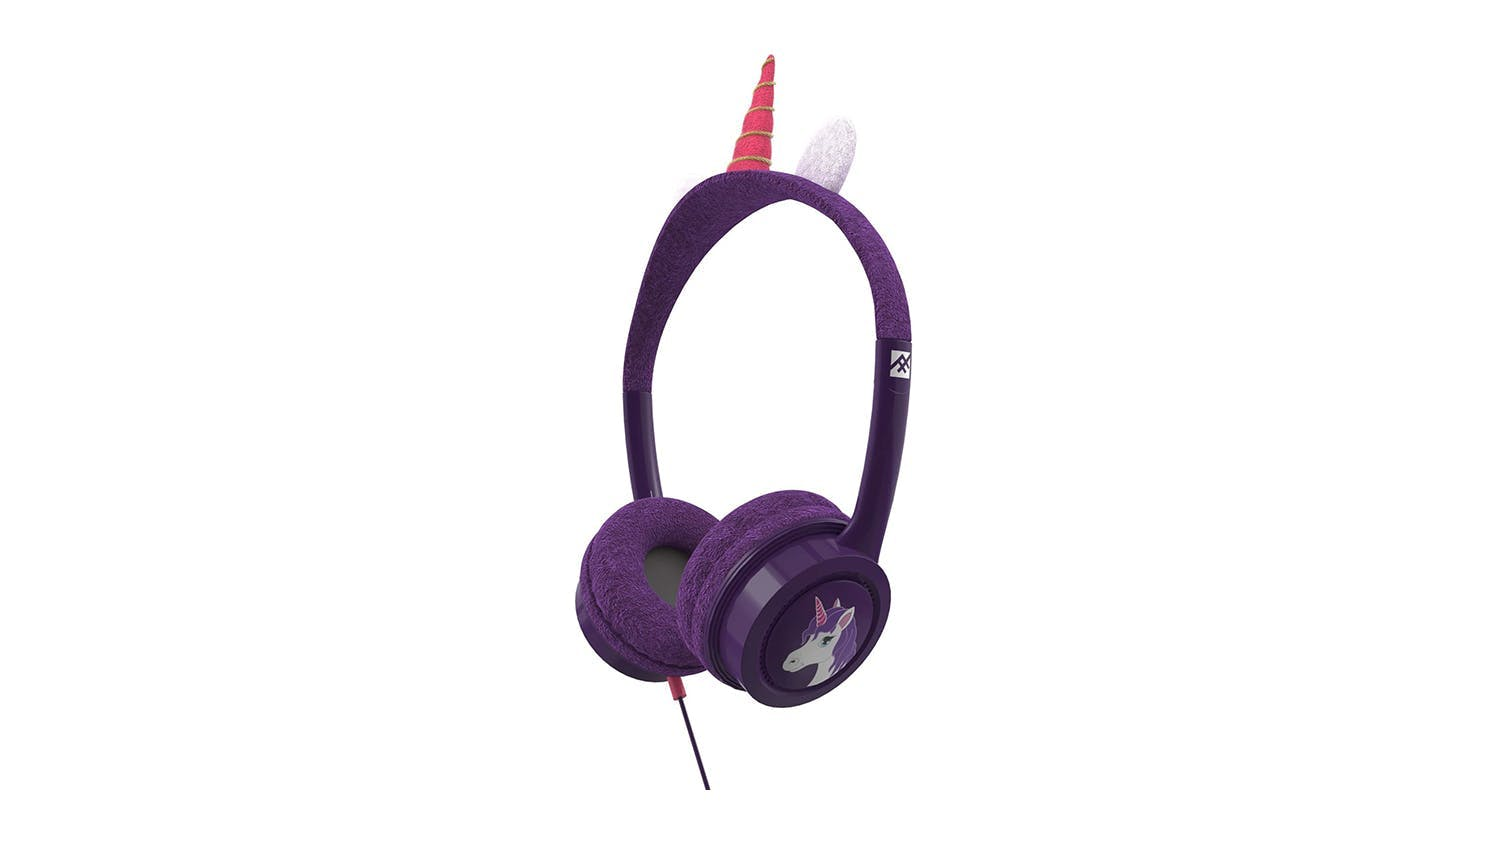 iFrogz Little Rockers Kids Wired Headphones - Unicorn